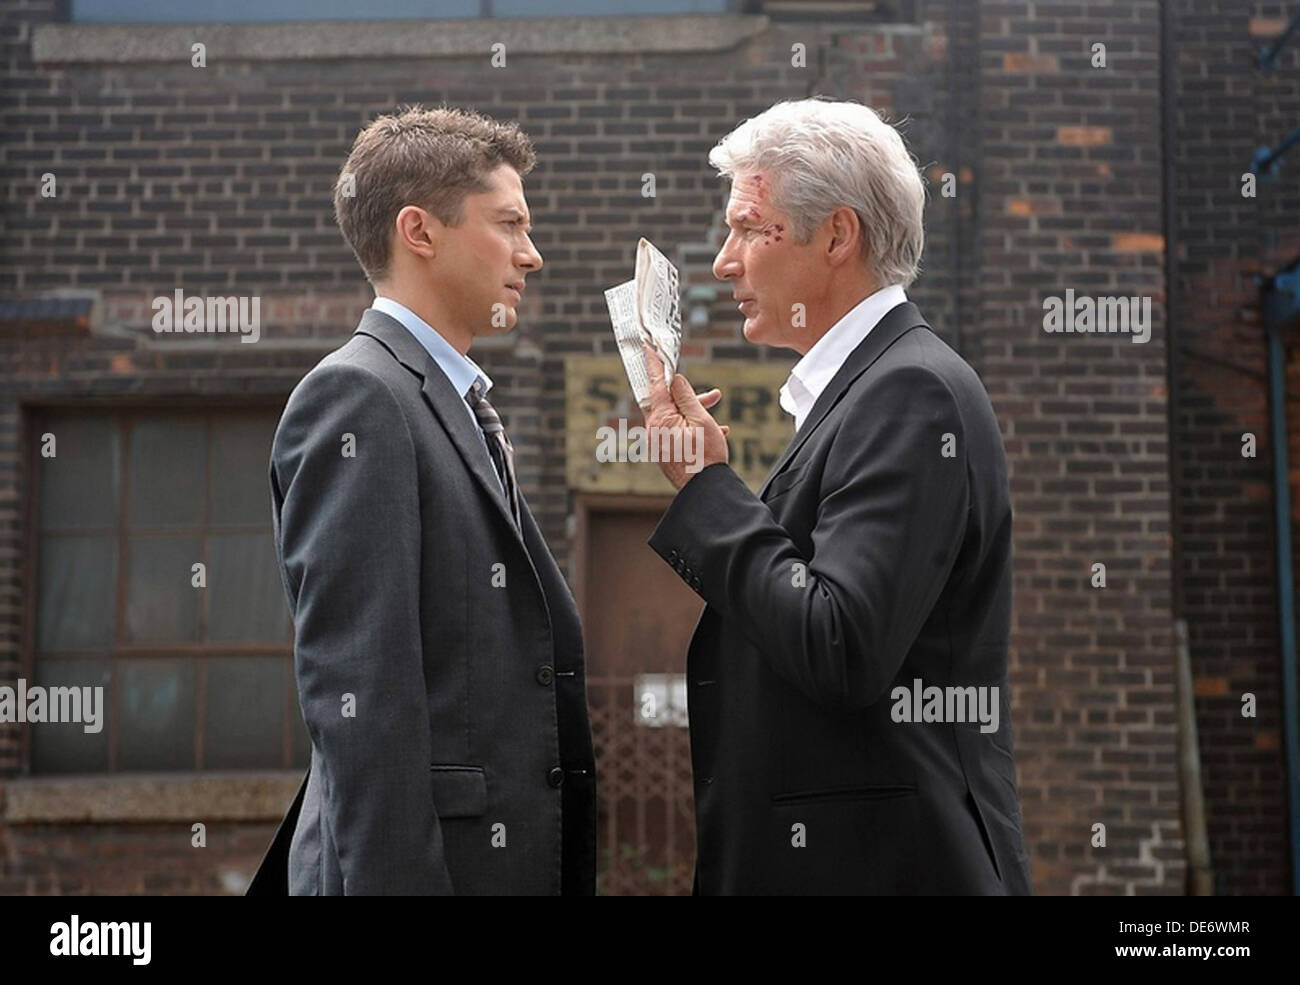 THE DOUBLE 2013 Studio Canal, BFI film with Topher Grace at left and Richard Gere - Stock Image